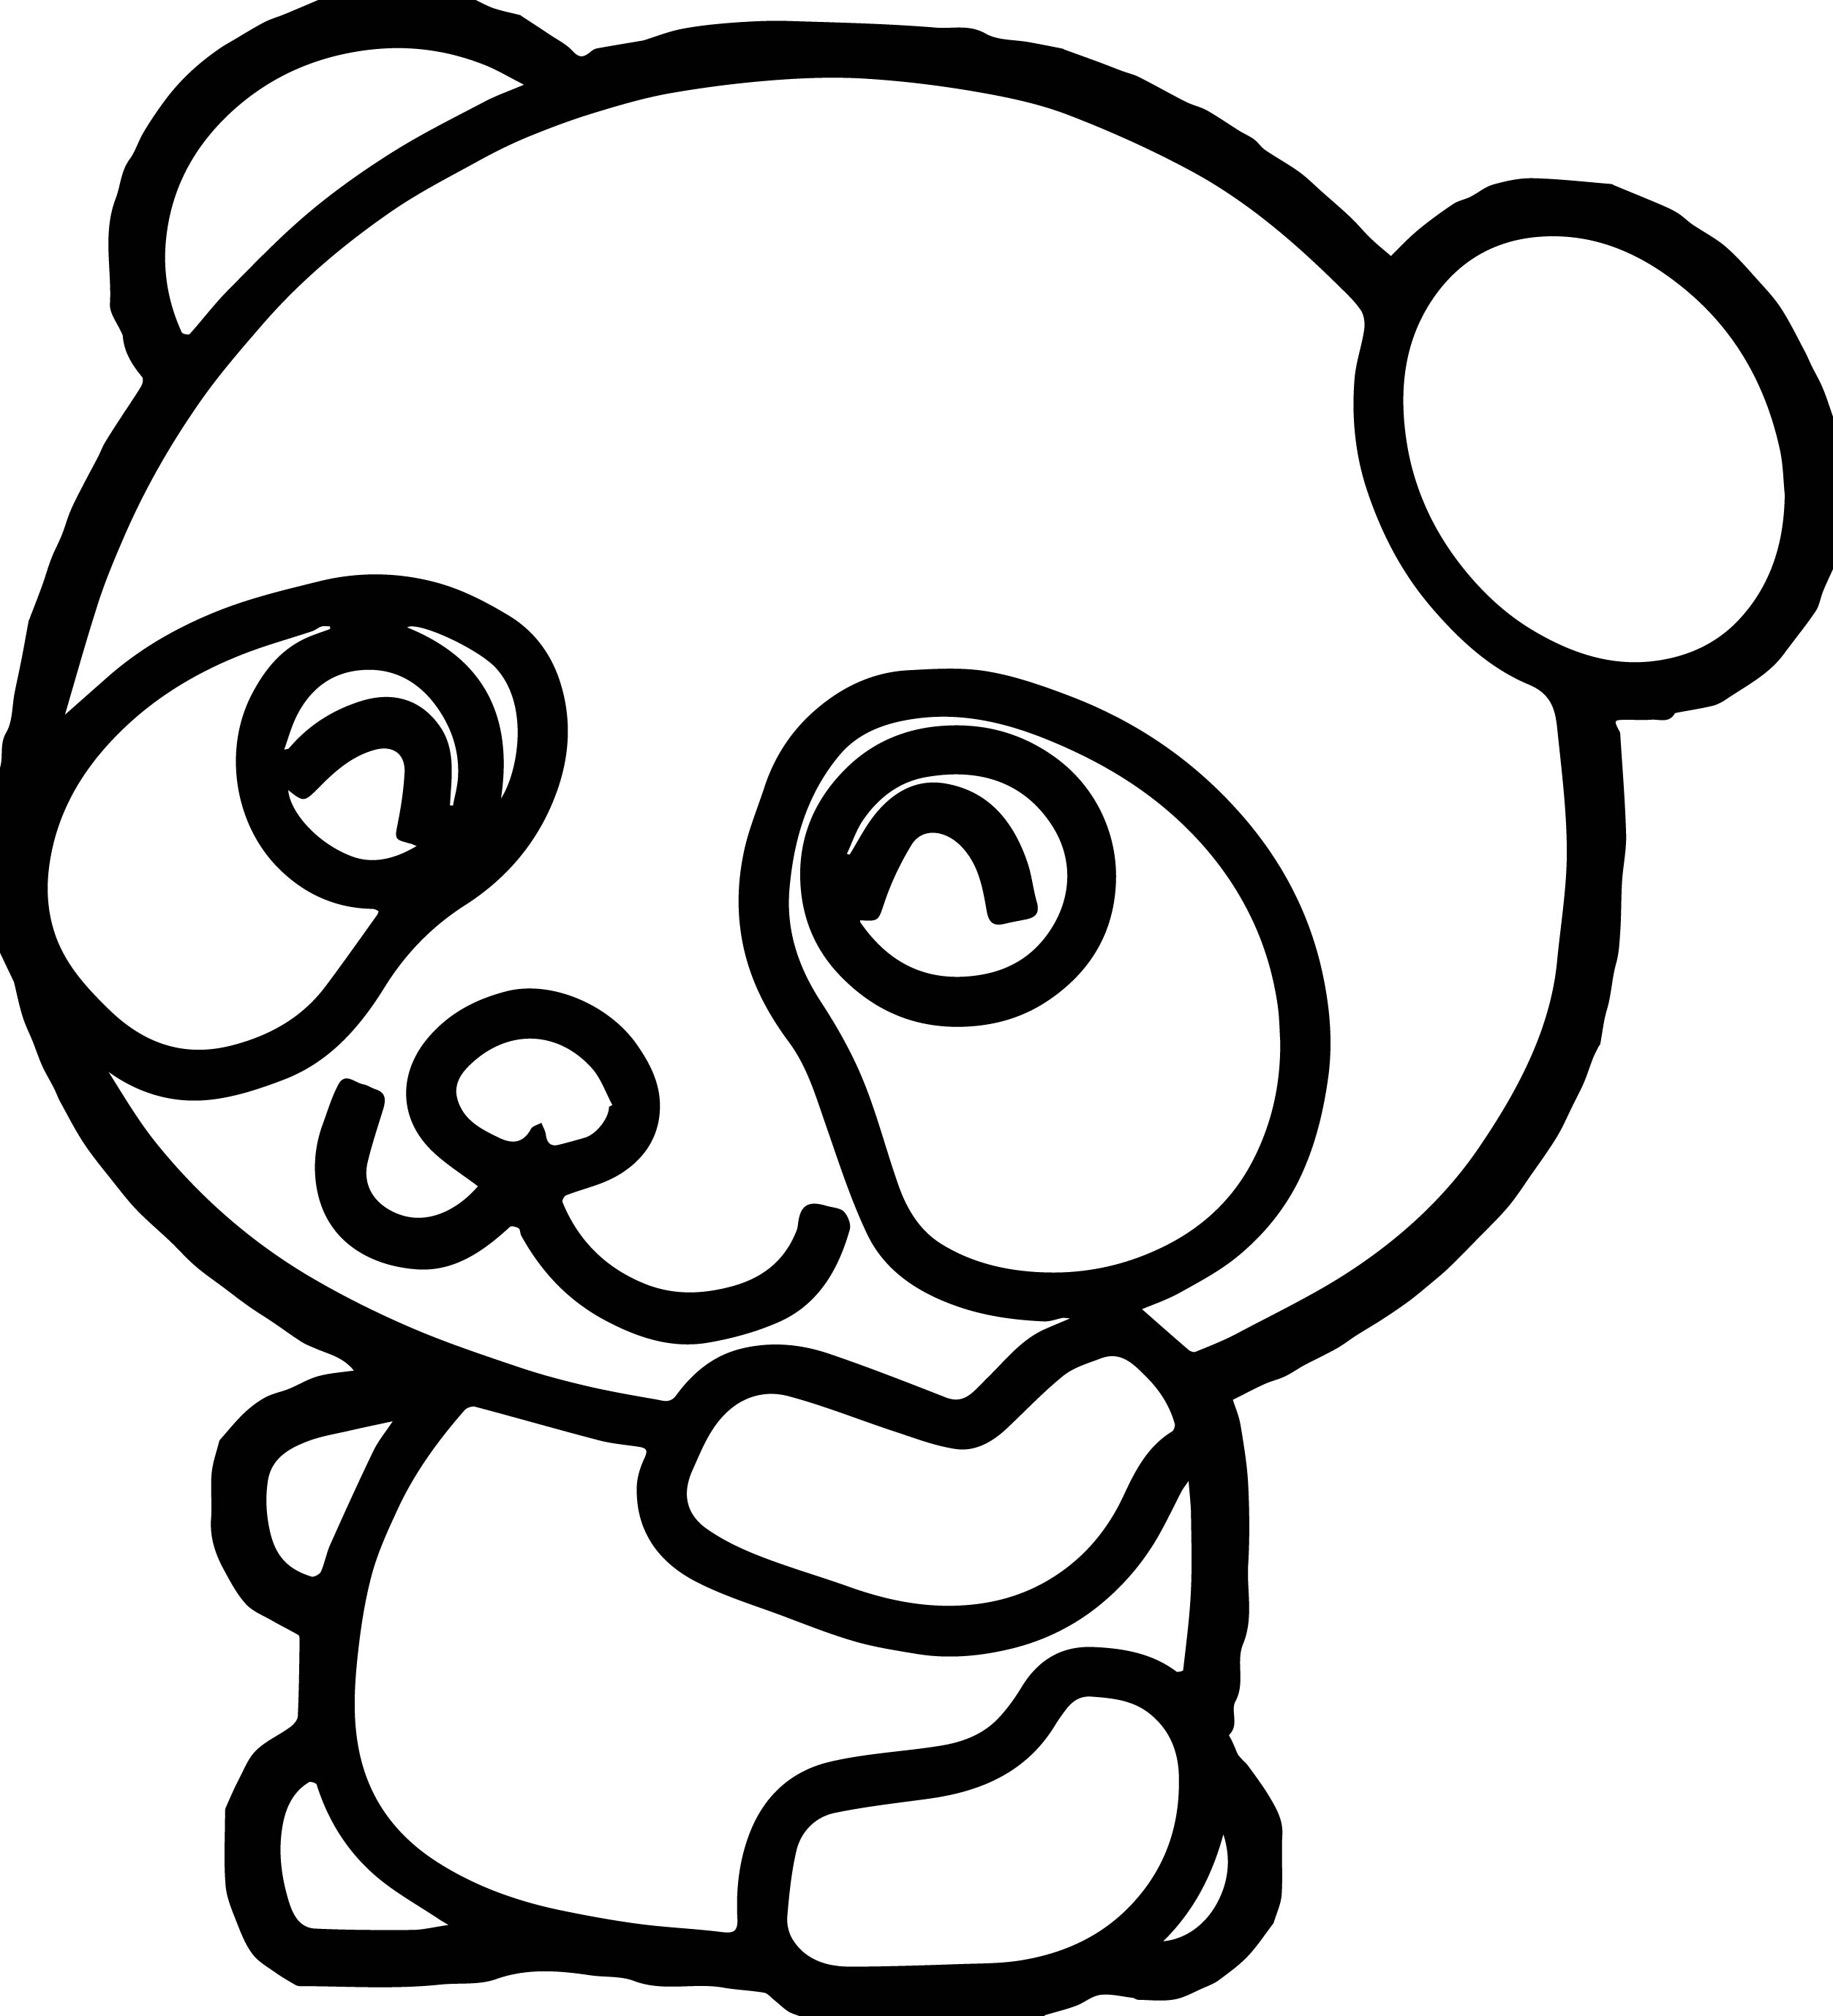 pandas coloring pages pandas to download for free pandas kids coloring pages pandas coloring pages